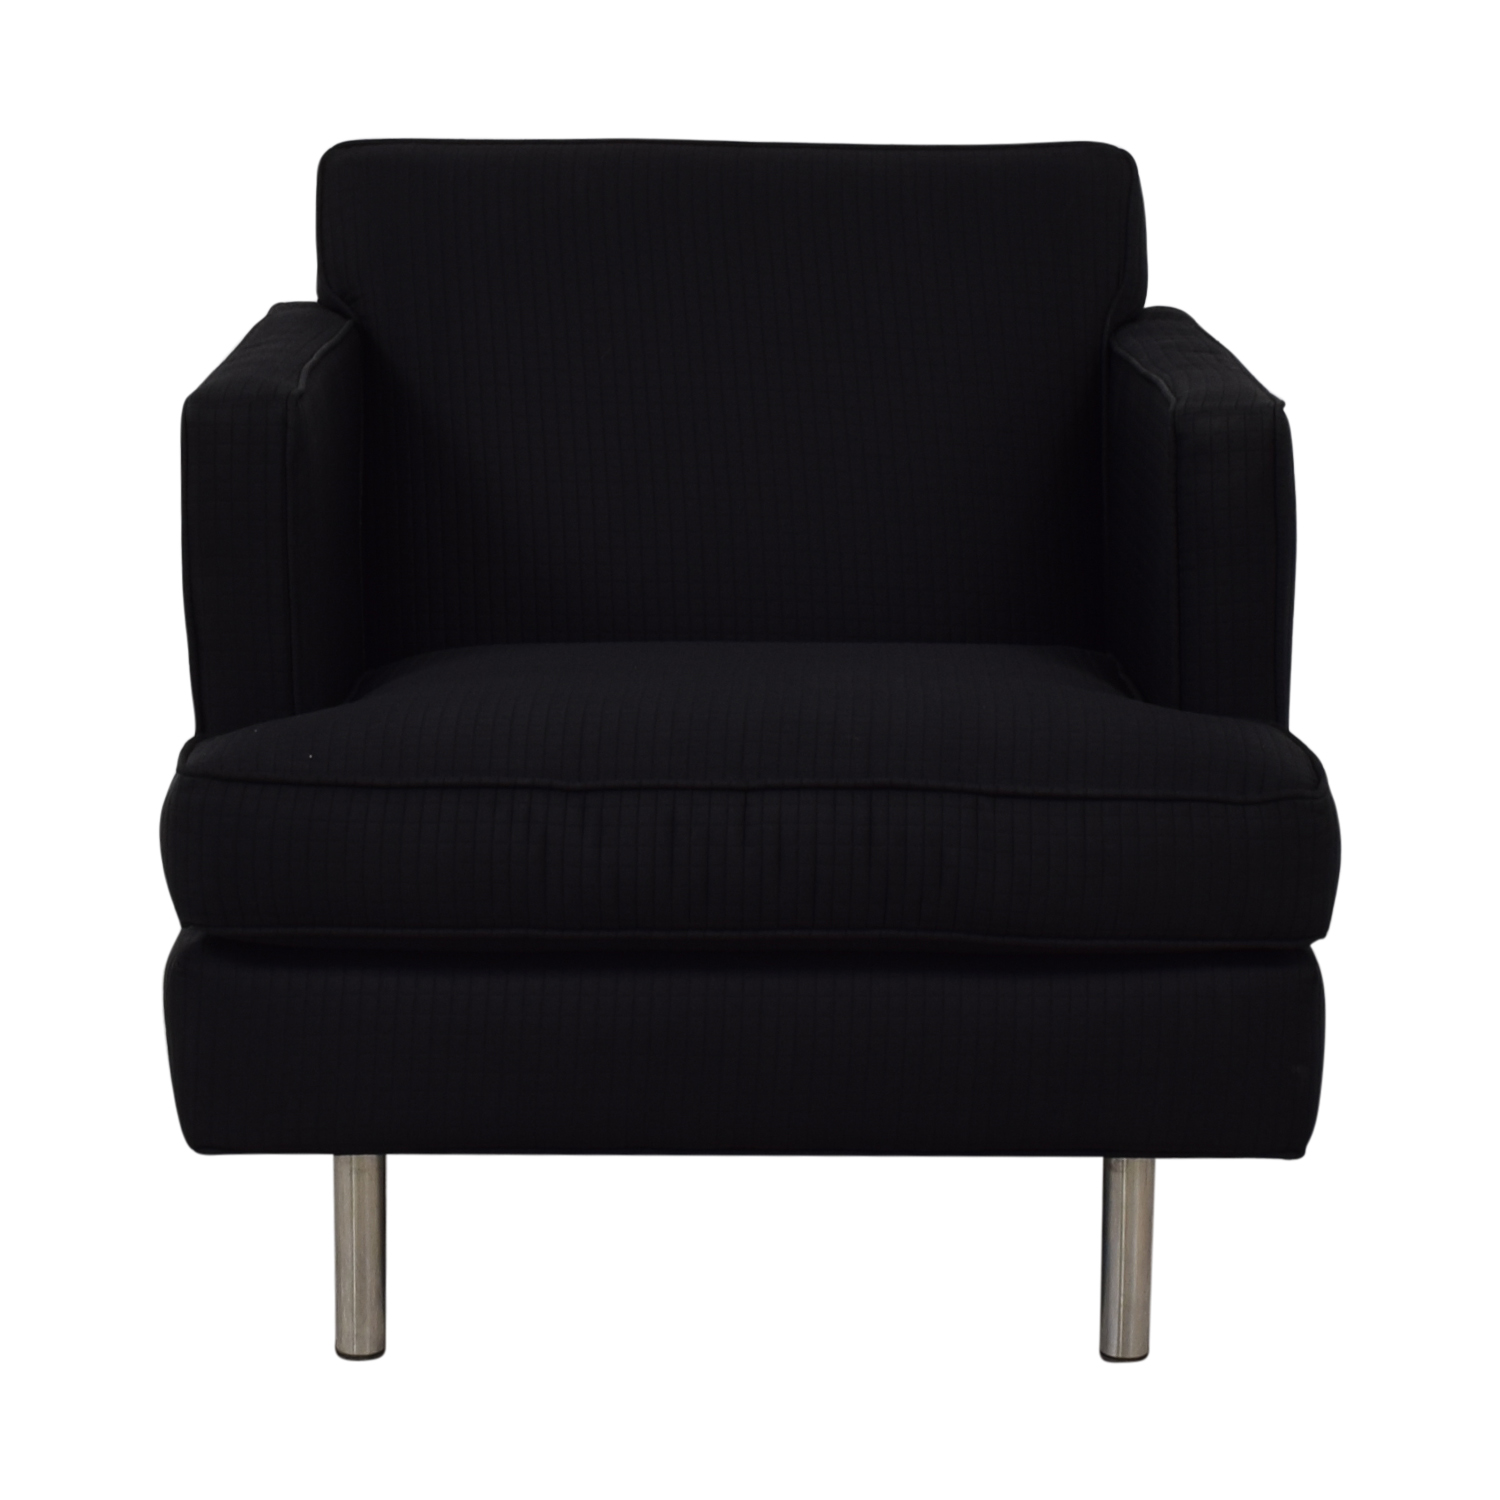 Modern Black Accent Chair price